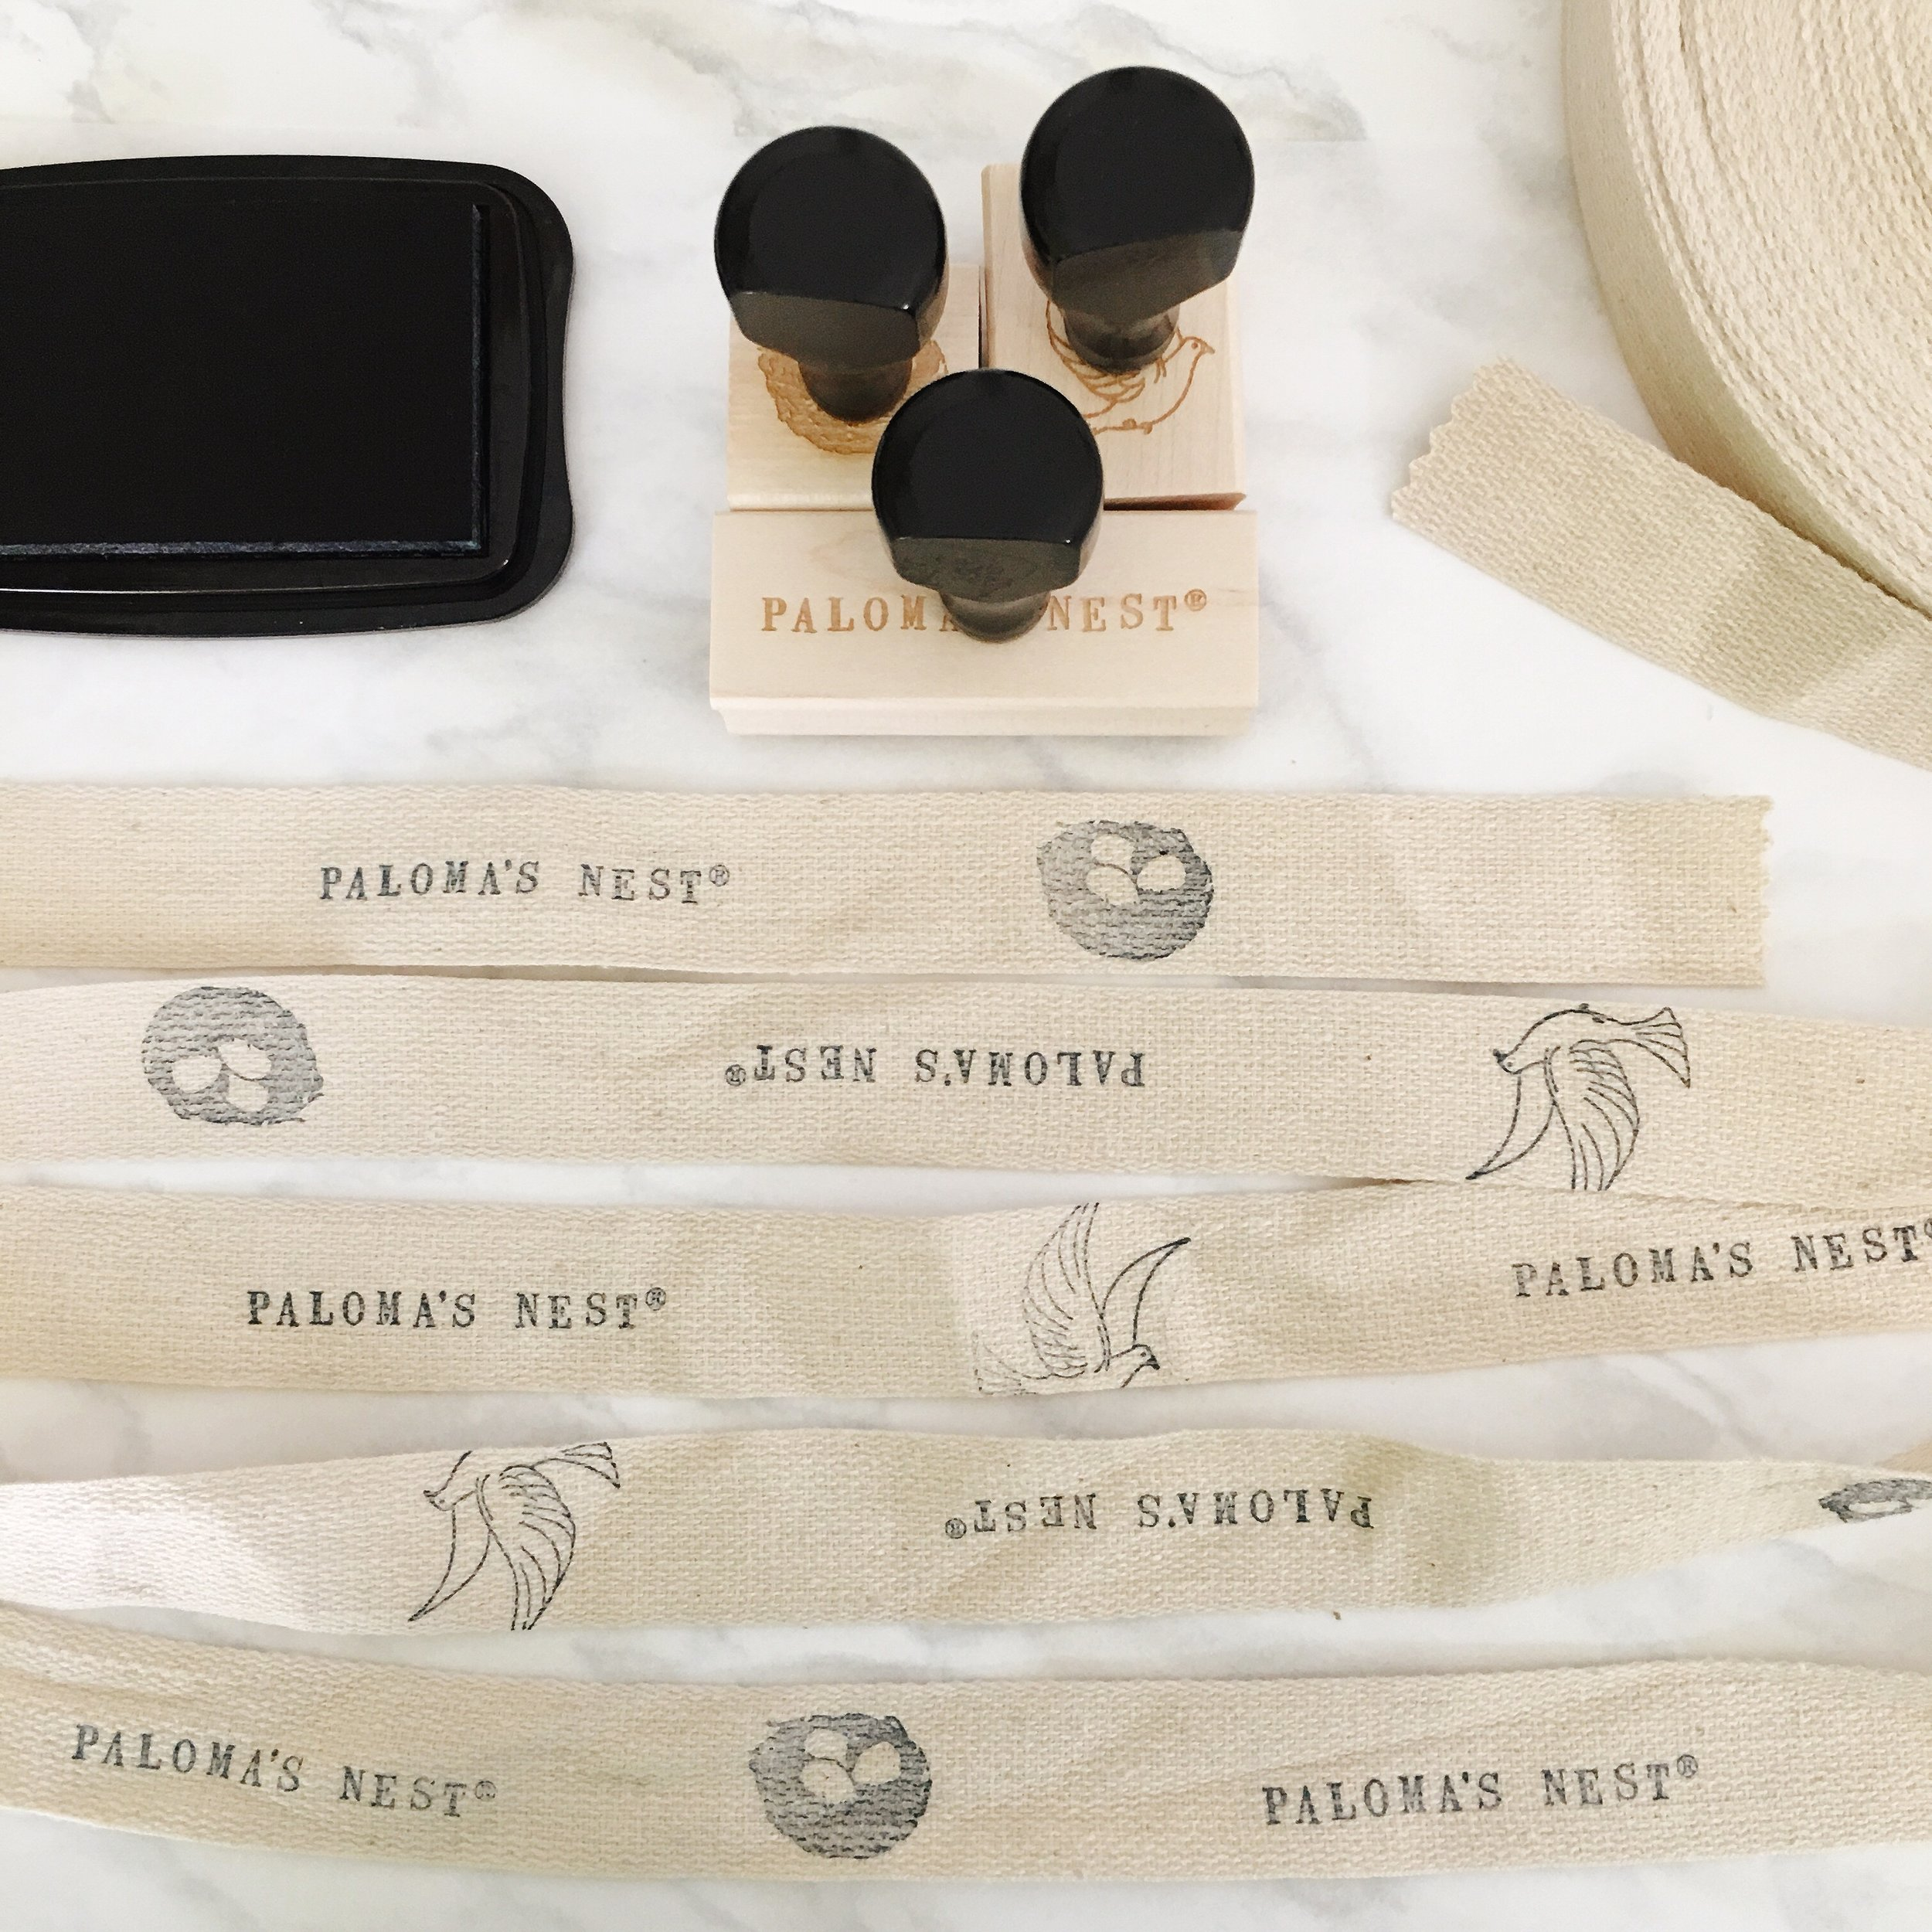 Creatiate Rubber Stamps Pretty Packaging Project 13.jpg